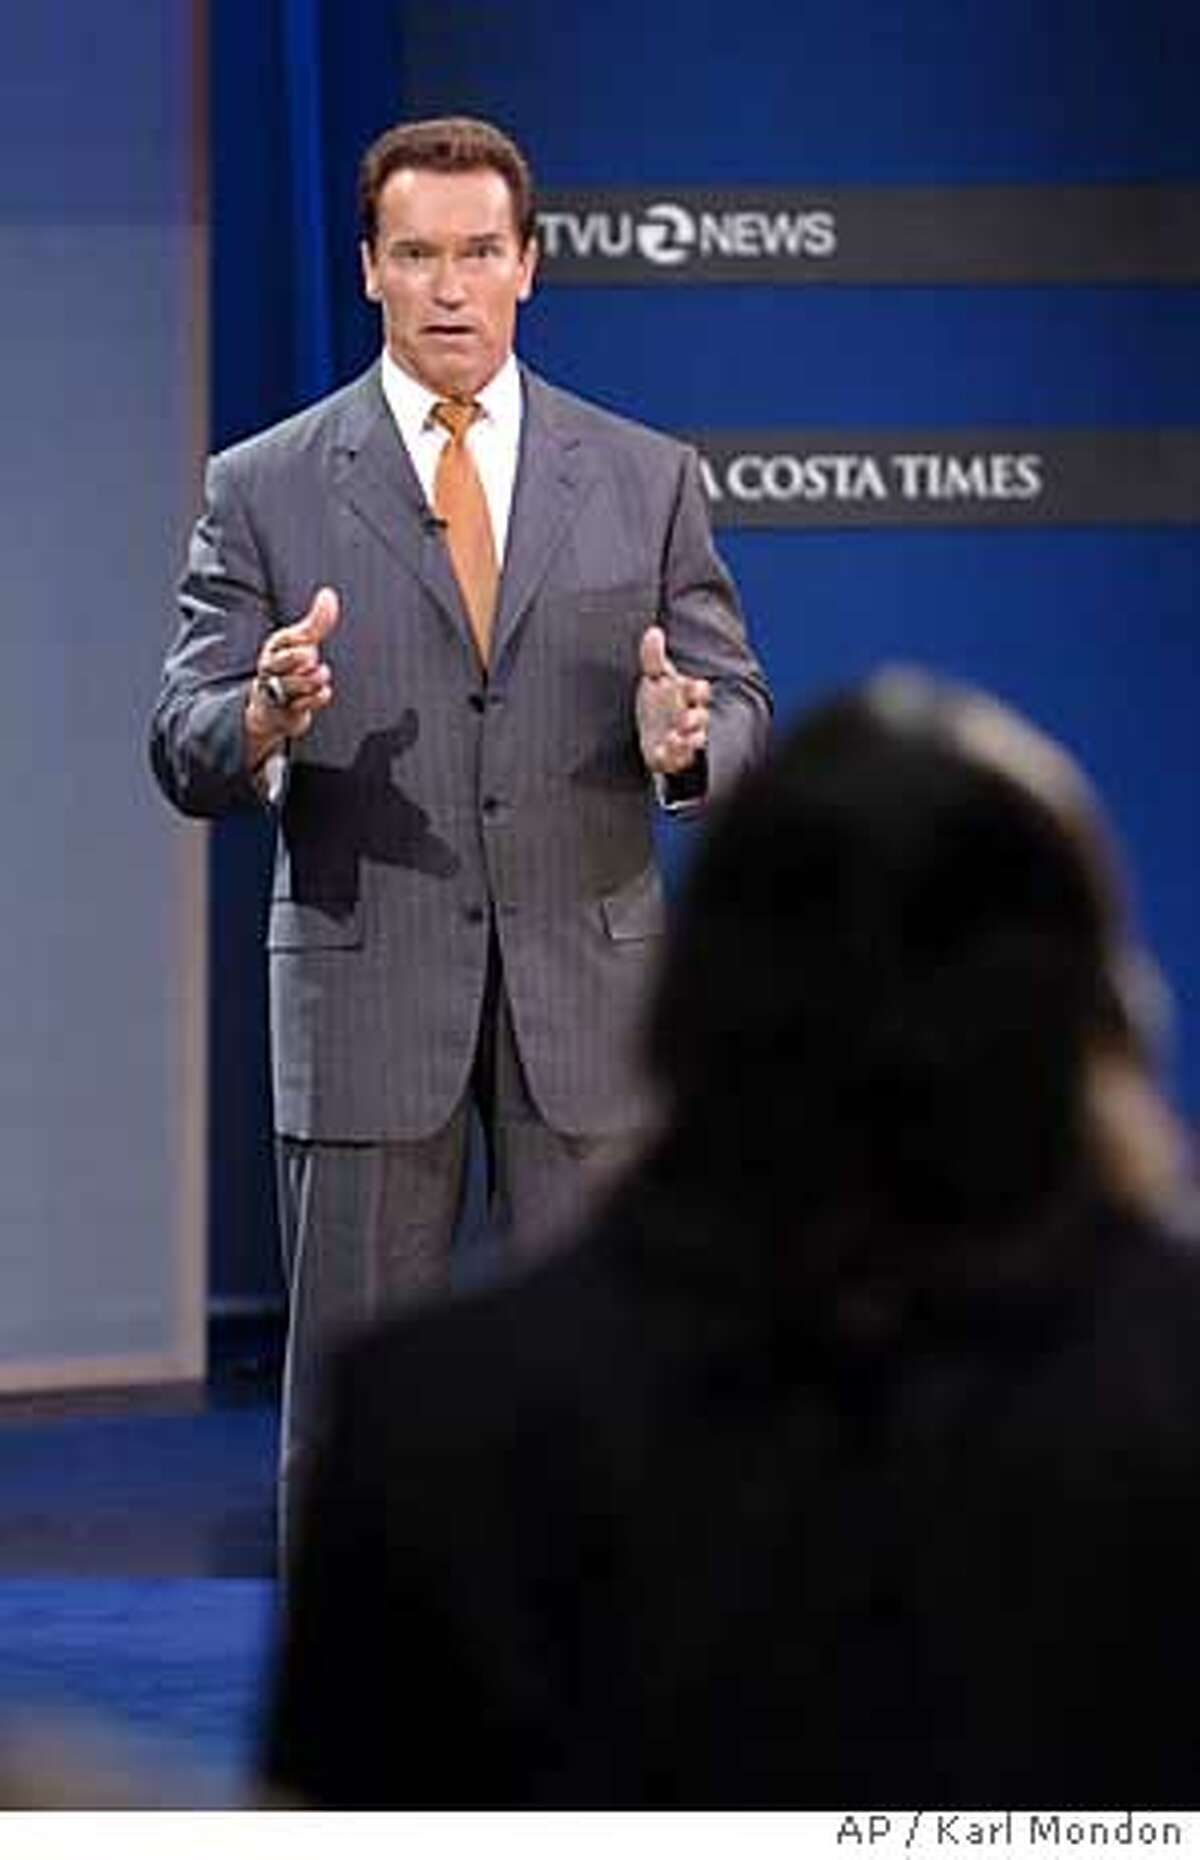 California Governor Arnold Schwarzenegger responds to questions during the forum at the Dean Lesher Regional Center for the Arts in Walnut Creek, Calif., Monday, Oct. 24, 2005. (AP Photo/Karl Mondon, Pool)